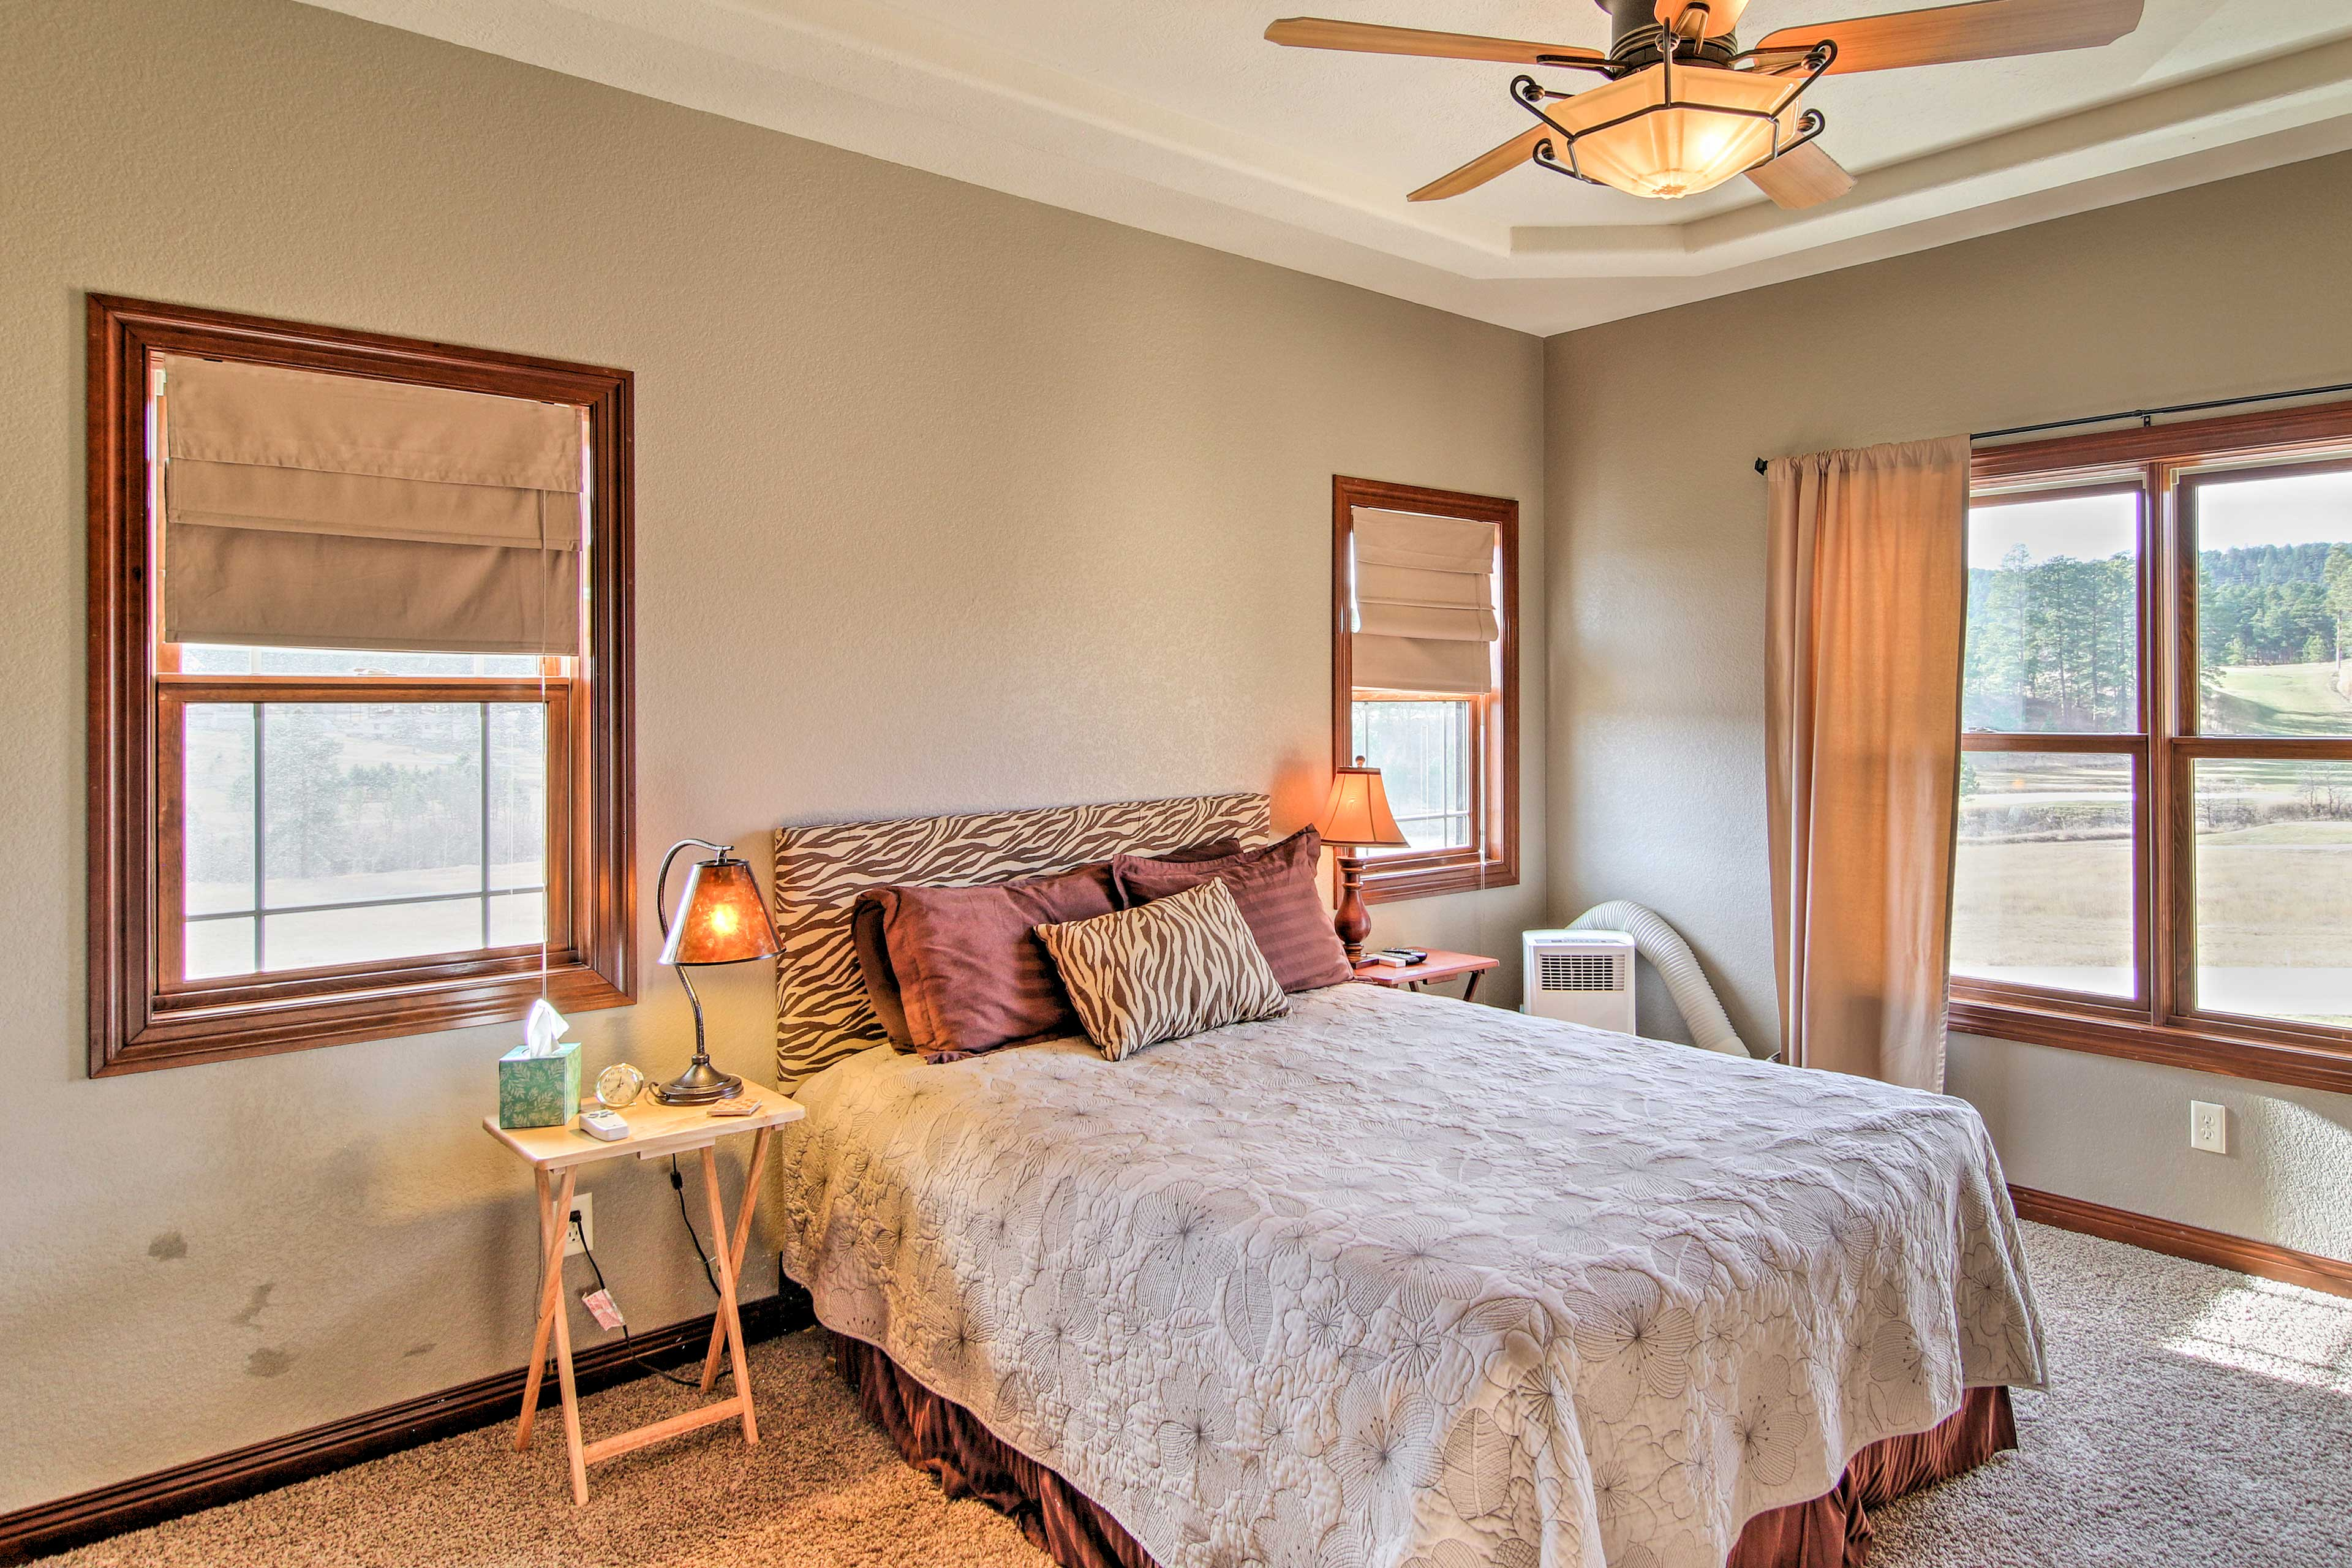 This bedroom boasts a comfortable king-sized bed.